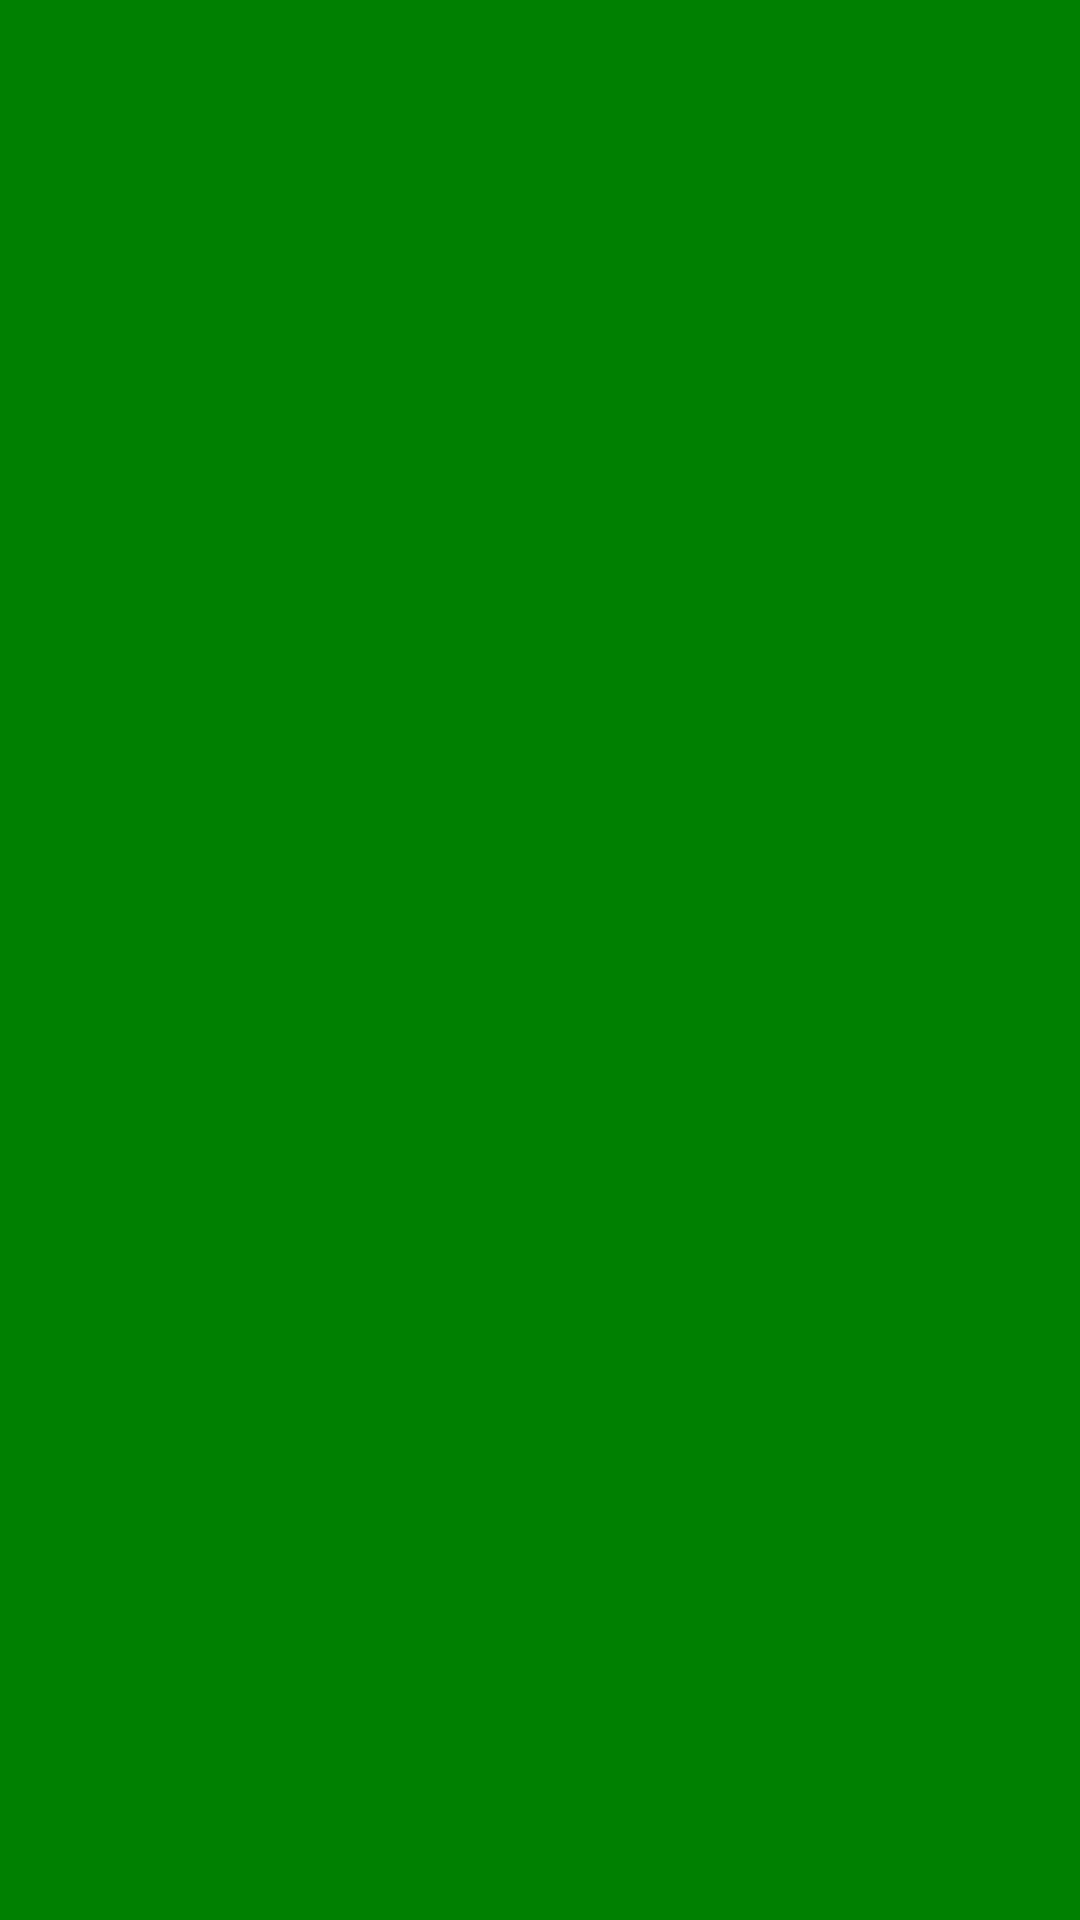 1080x1920 Office Green Solid Color Background